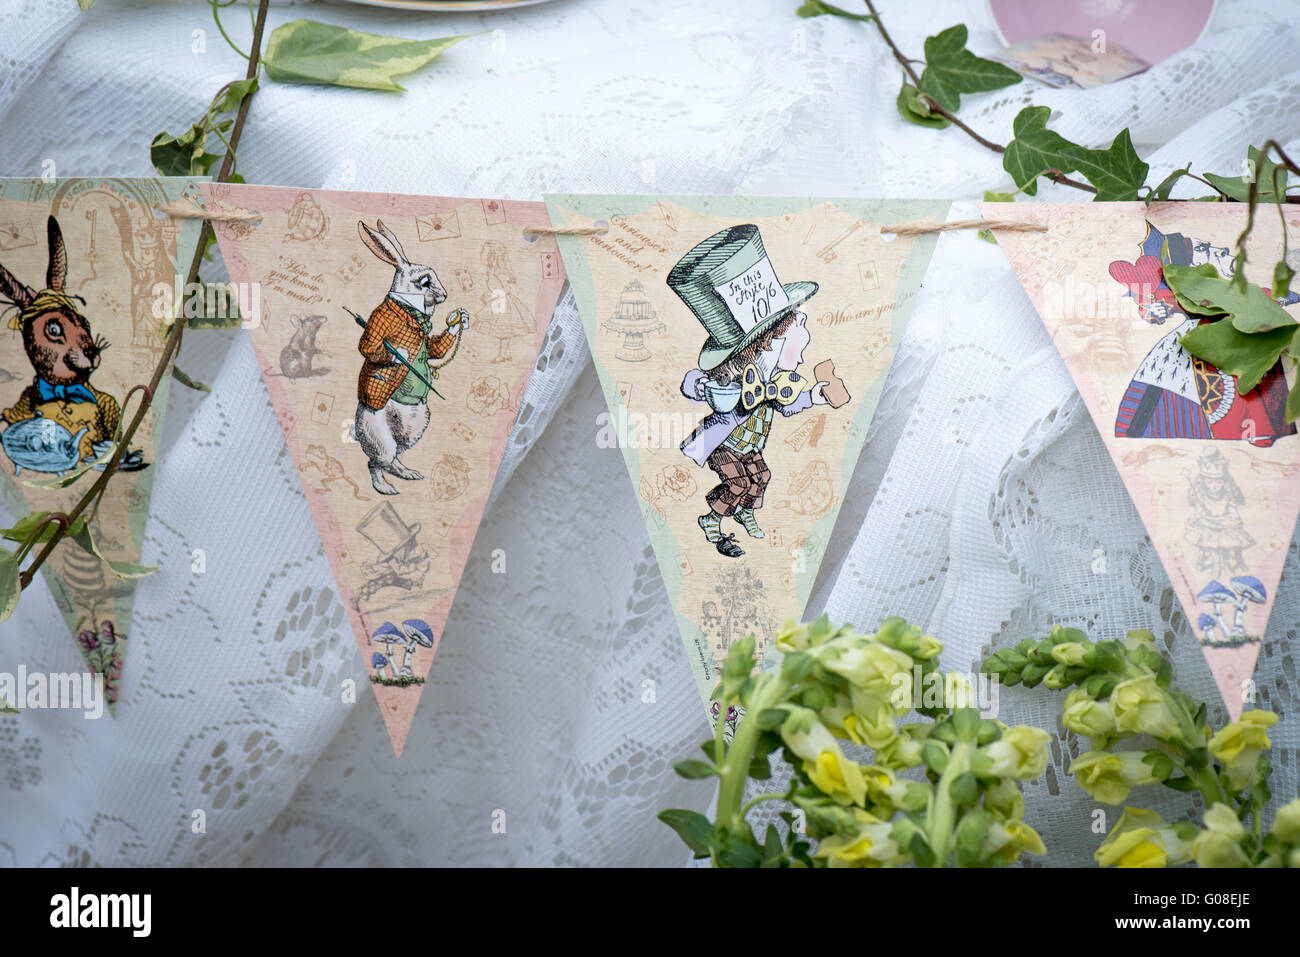 International Party Decorations Mad Hatter Afternoon Tea Party Decorations At Cake International